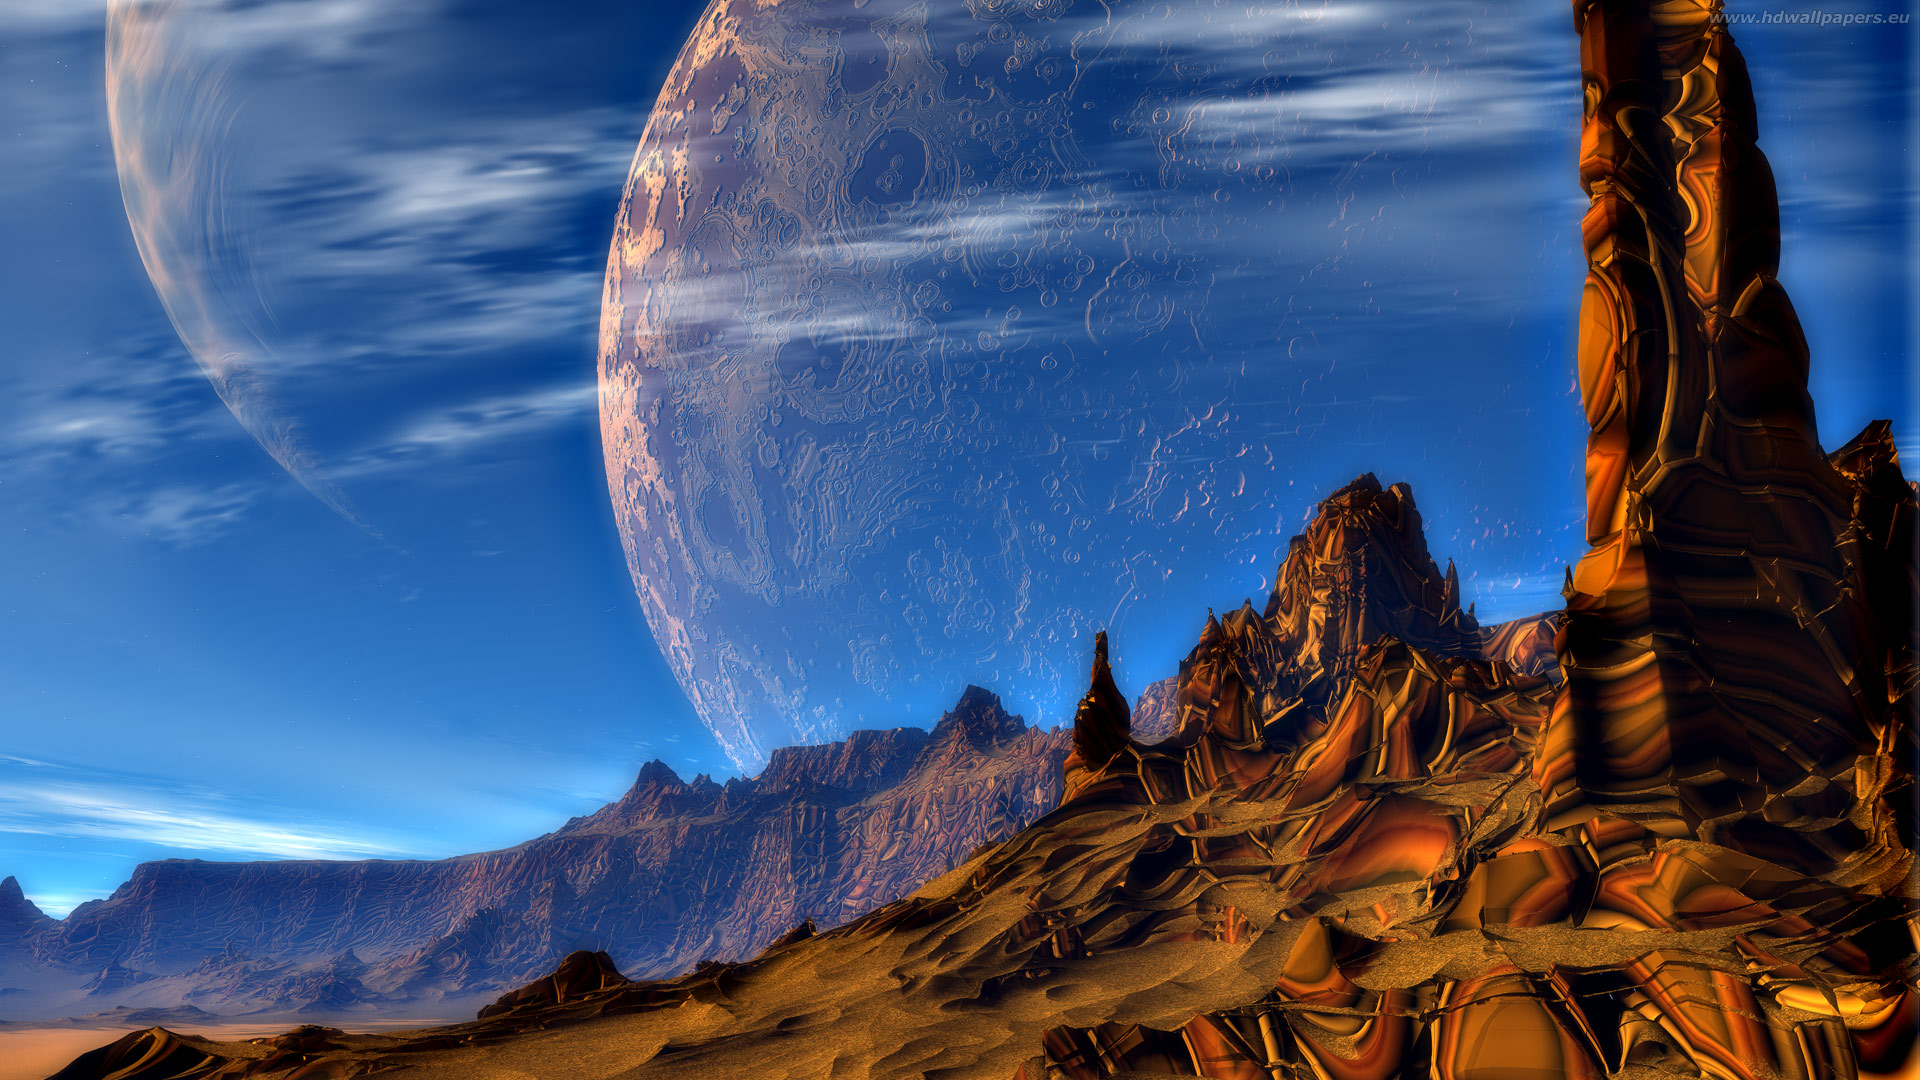 science fiction dalaro full HD wide 1920x1080